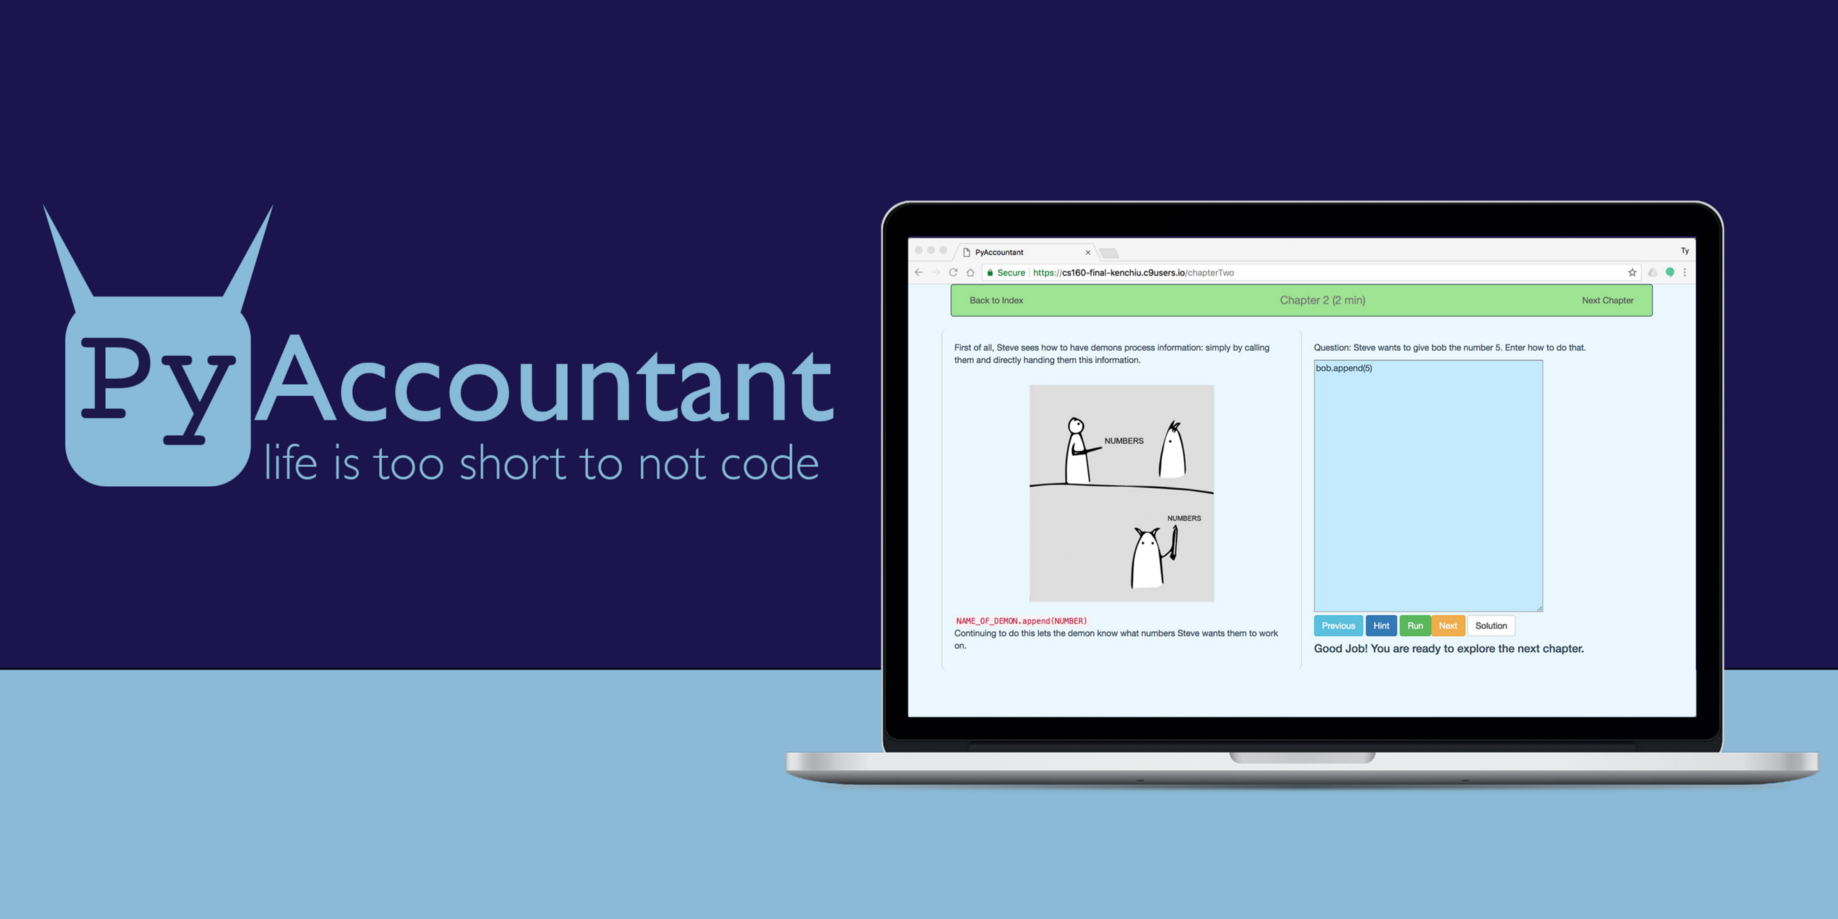 PyAccountant: Redesigning Programming Education for Accountants